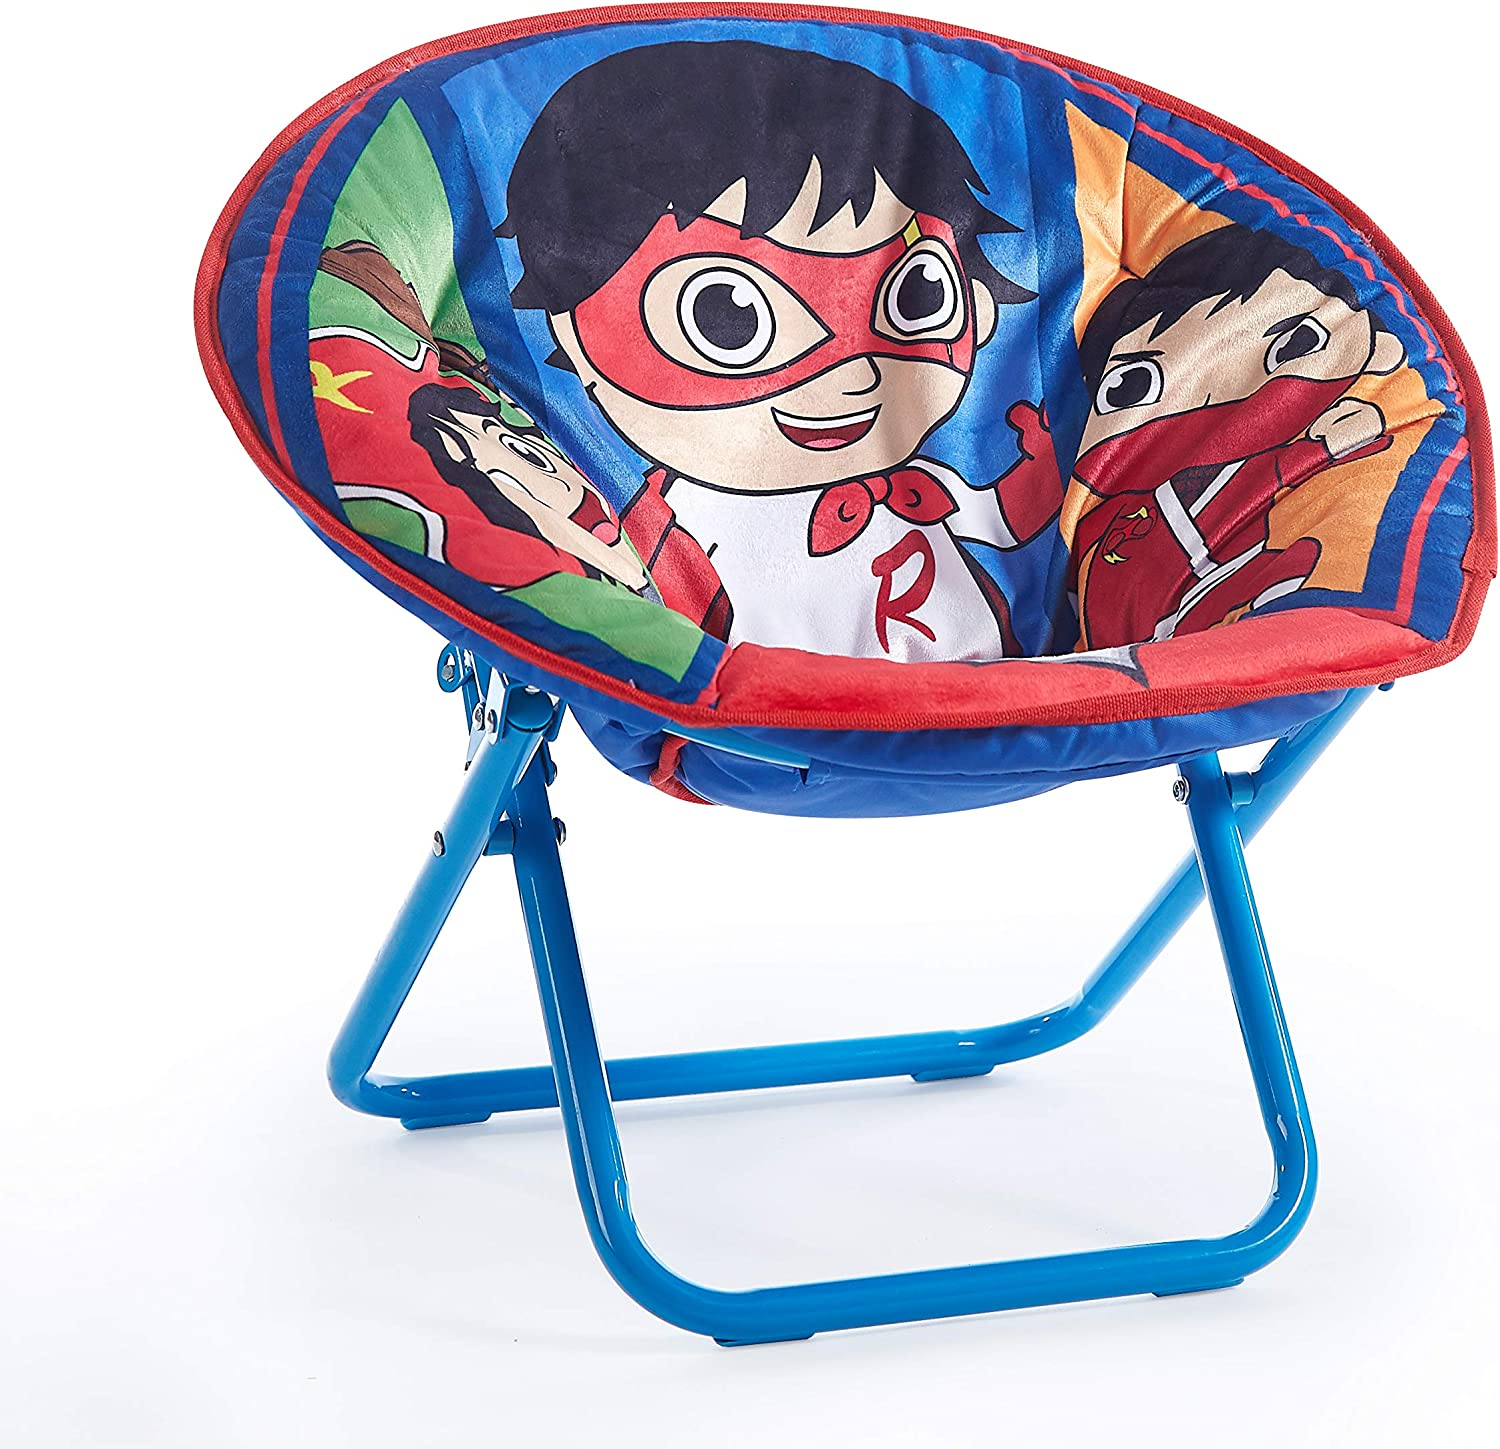 Idea Nuova Ryan's World Toddler Saucer Chair, Ages 3+, Multicolor